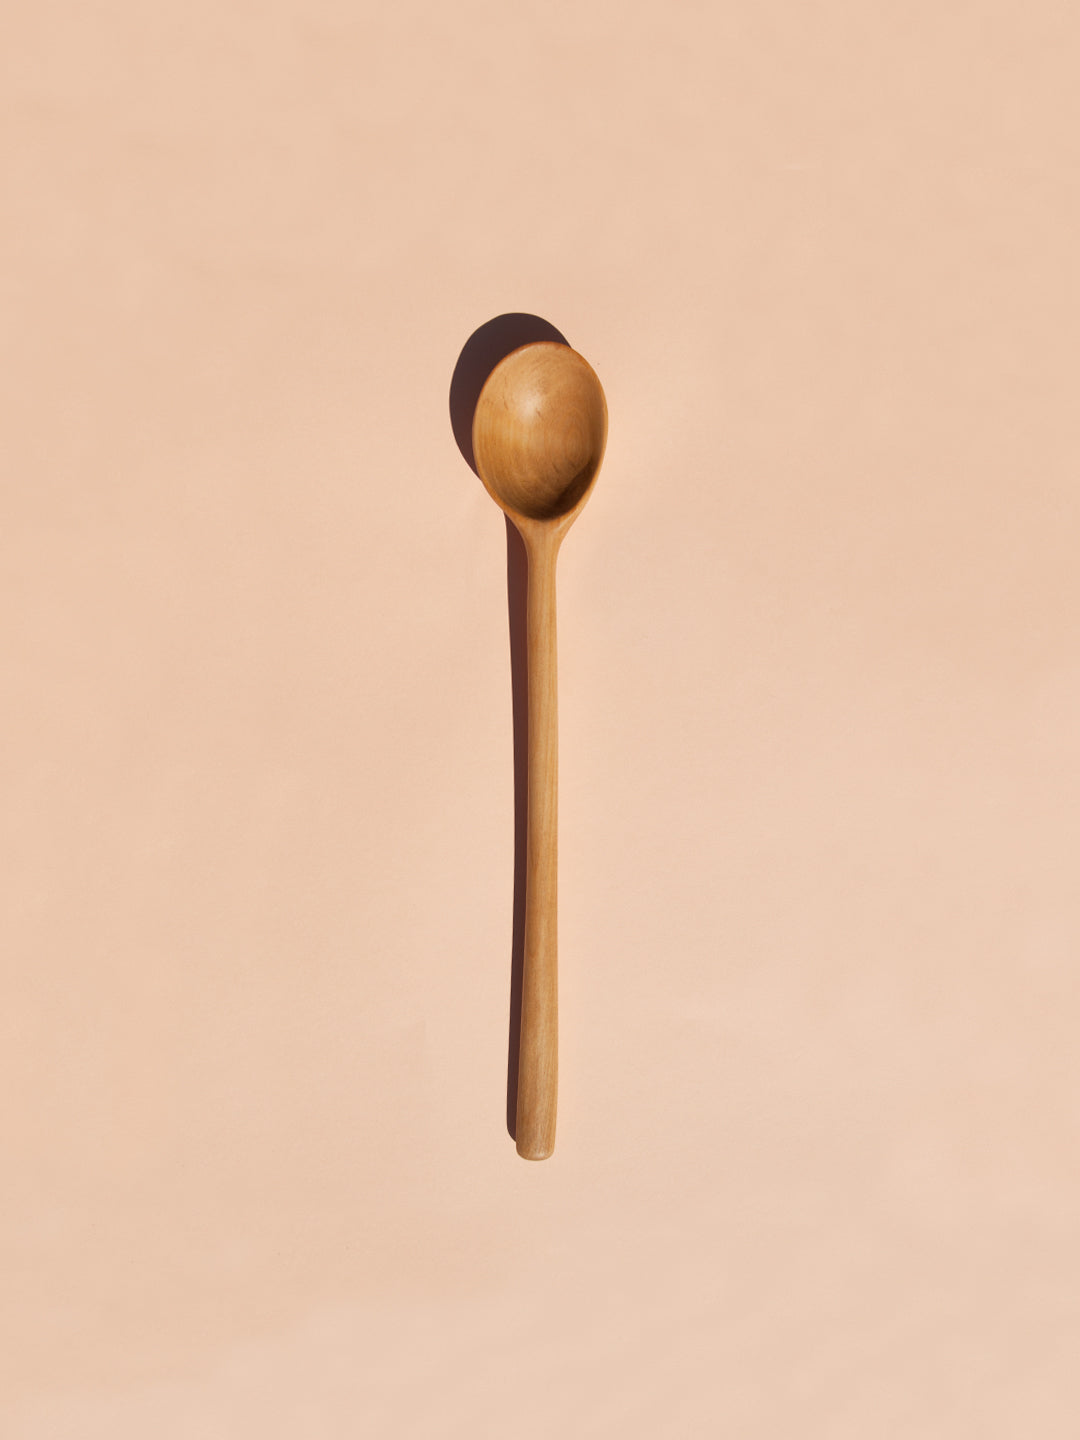 Kauchy_Secret_Barry_Hand_Carved_Wood_Spoons_Ponyboy